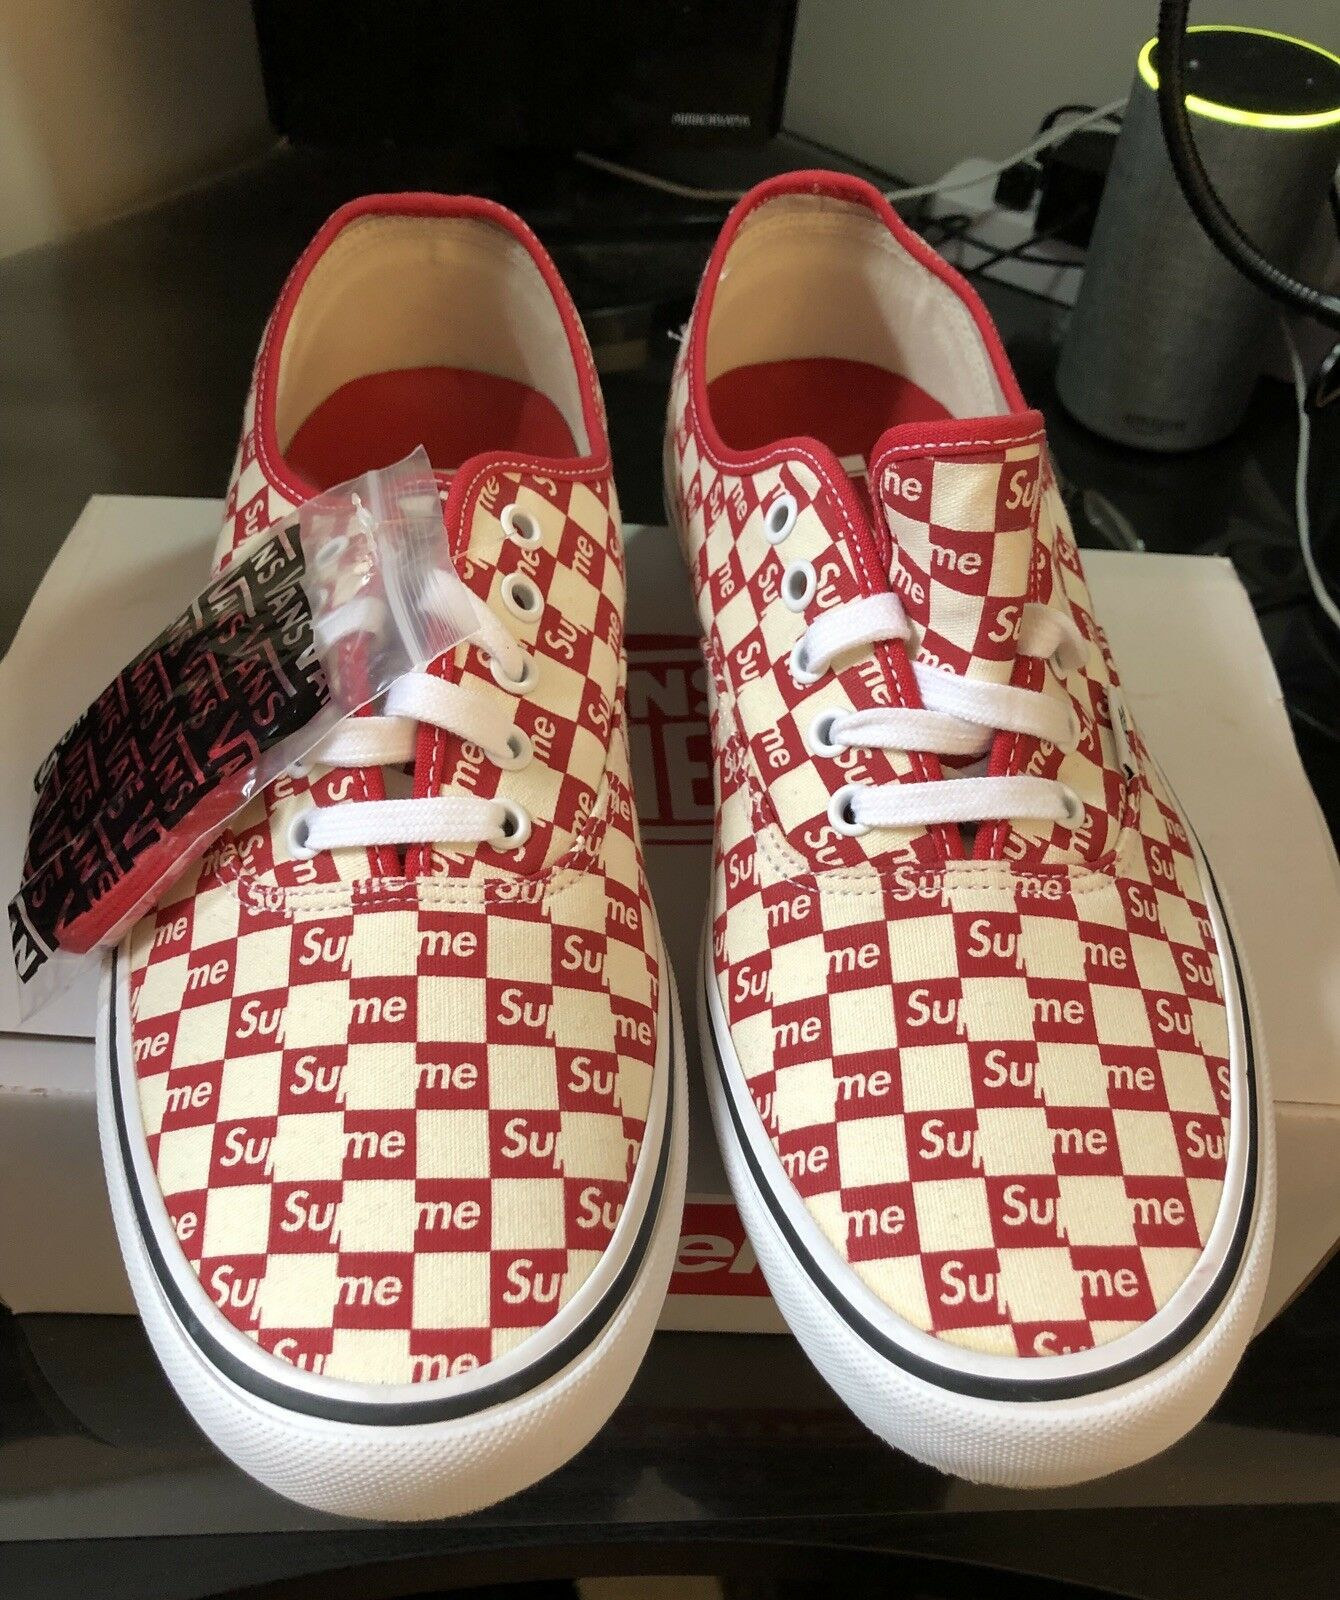 606a4088f20 Supreme Vans Vans Vans Red Checker Size 12 9a9cef - the-turningpoint.com